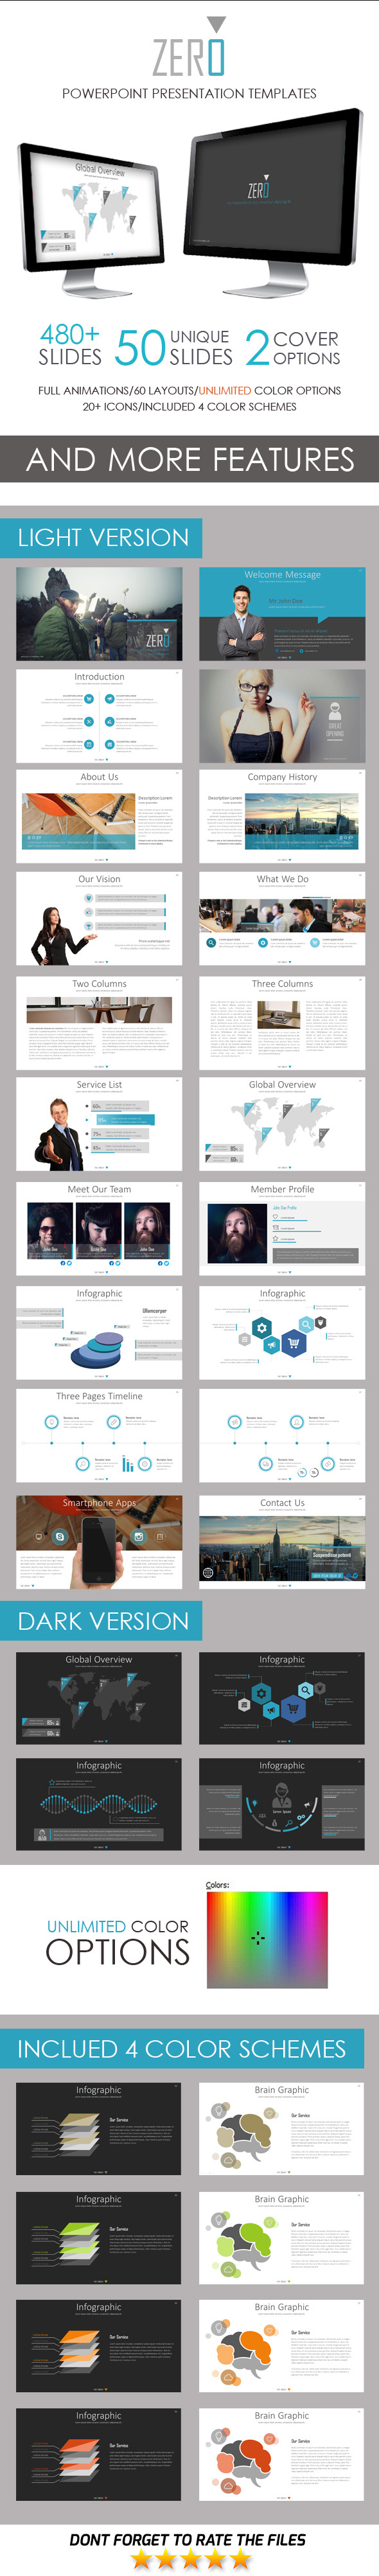 Zero Powerpoint Template - Business PowerPoint Templates